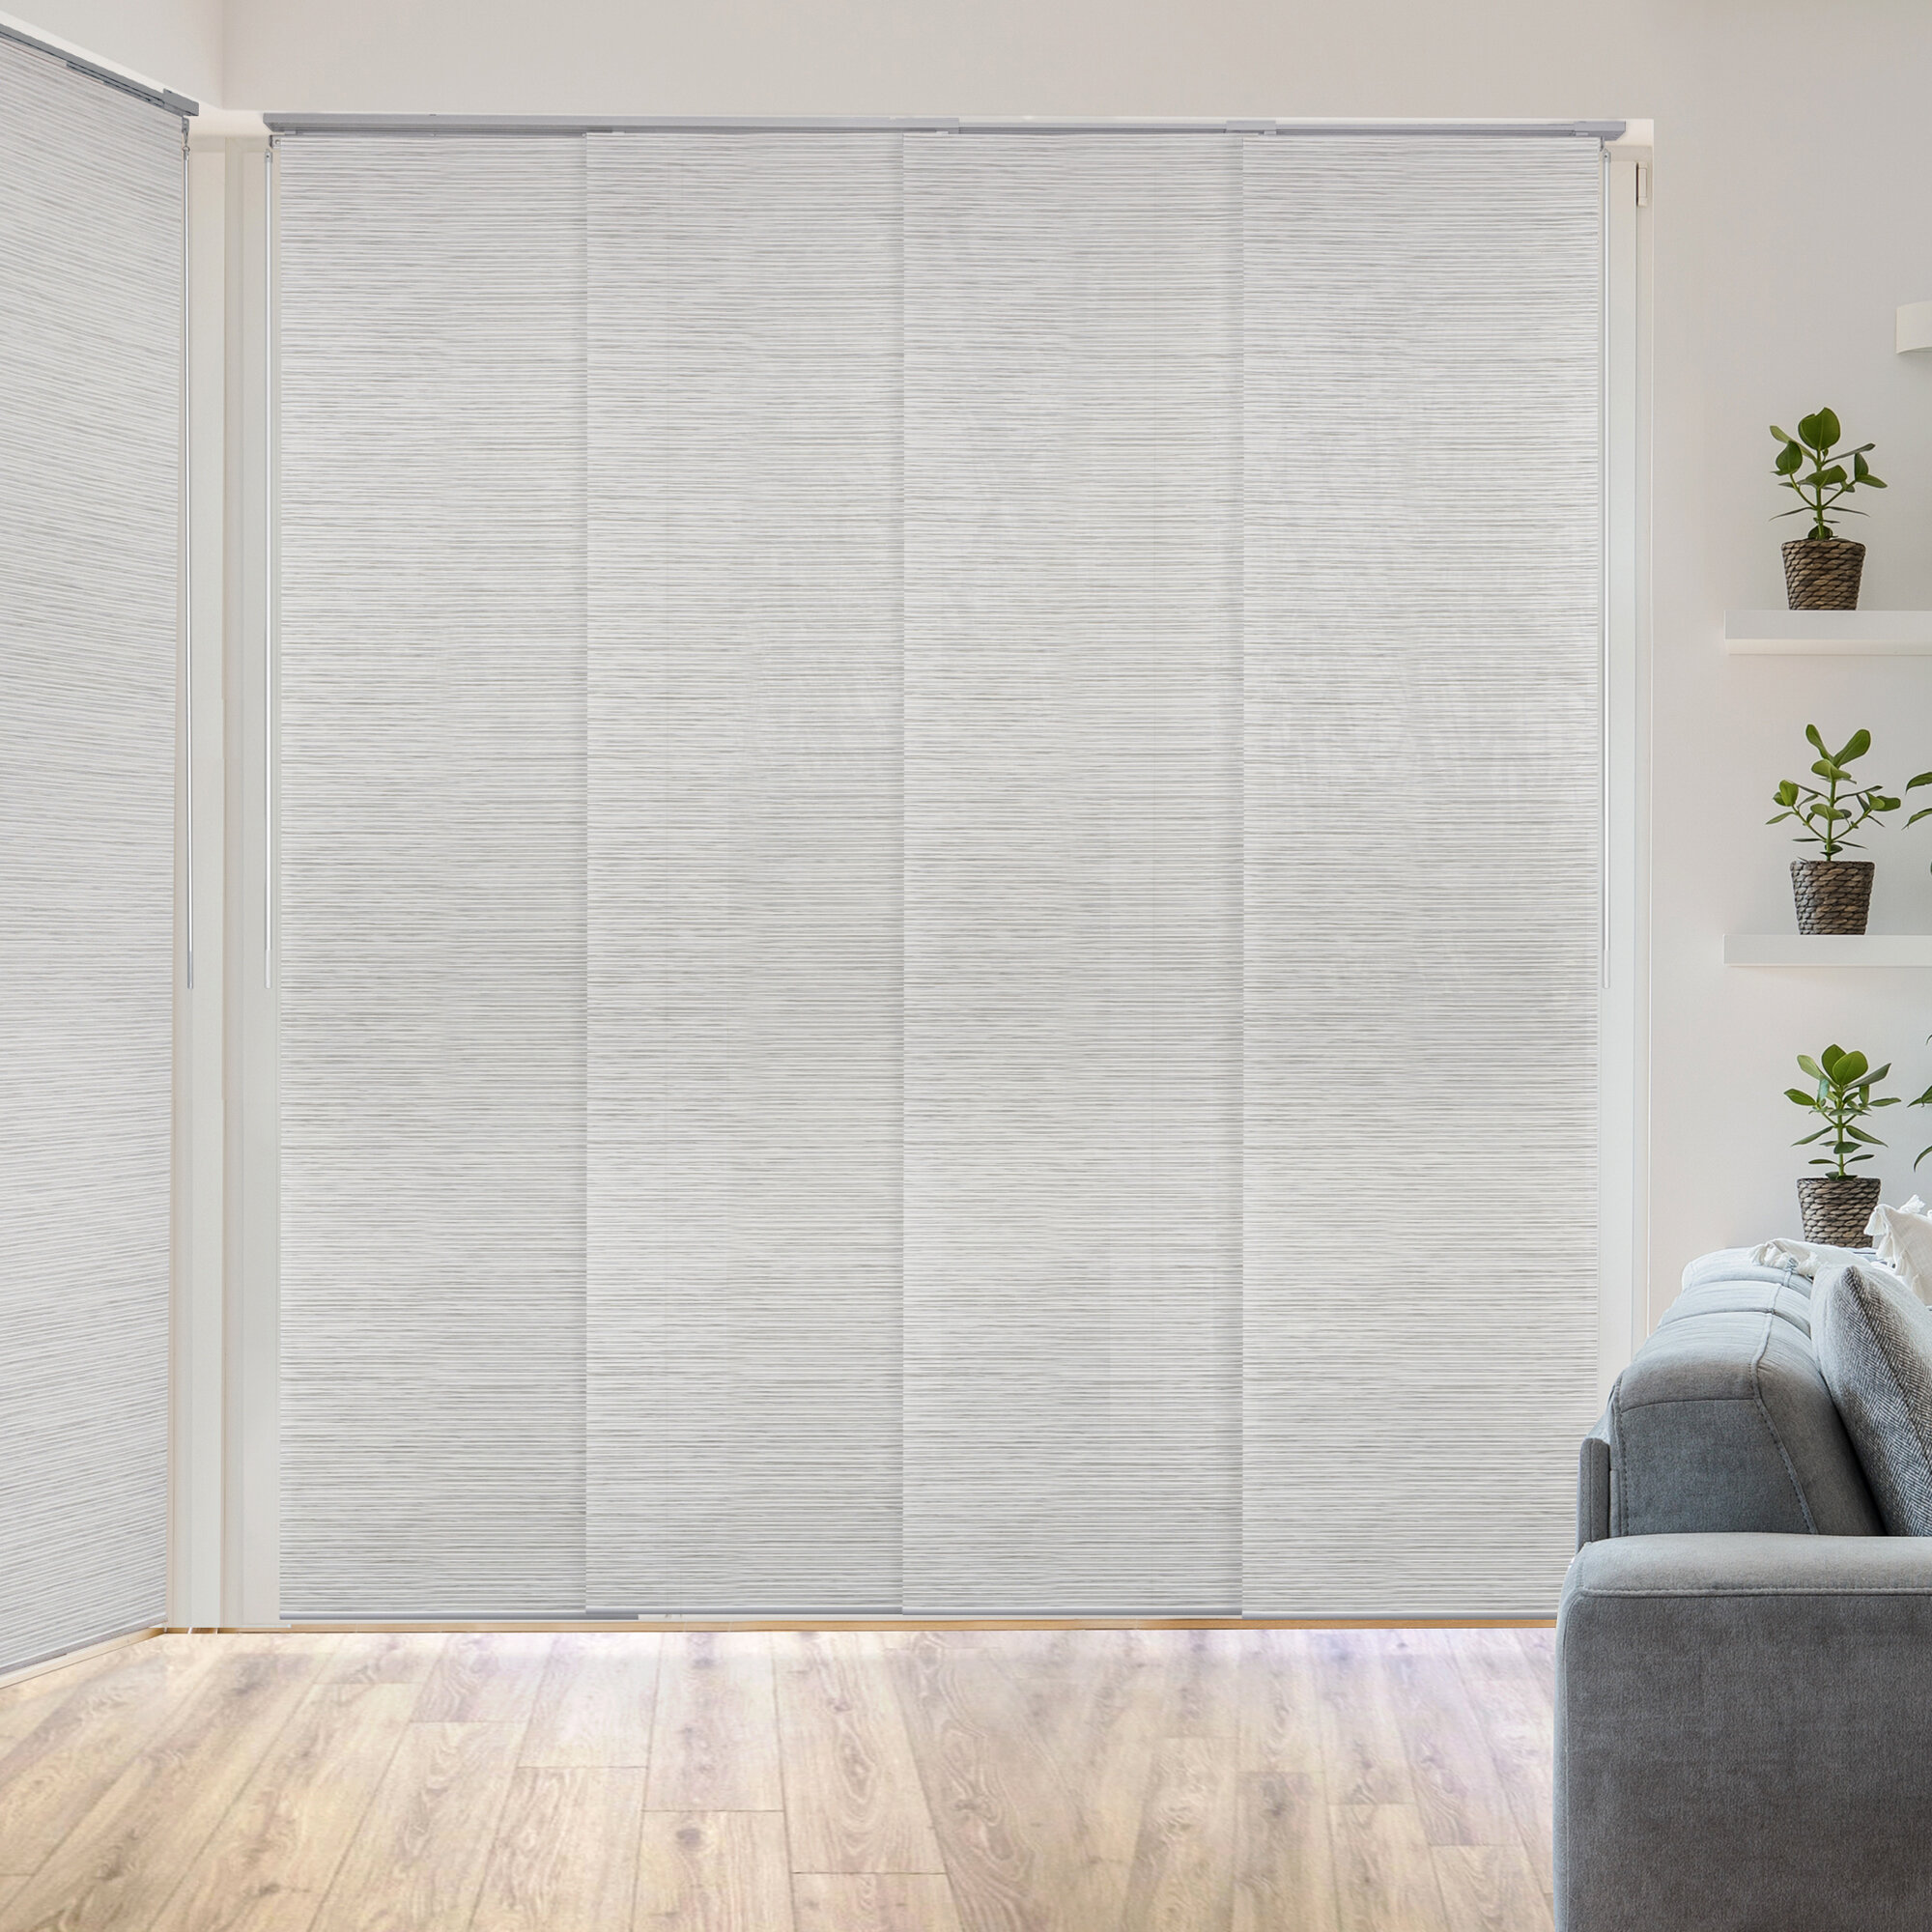 Orren Ellis Deluxe Adjustable Sliding Room Darkening White Gray Vertical Blind Reviews Wayfair